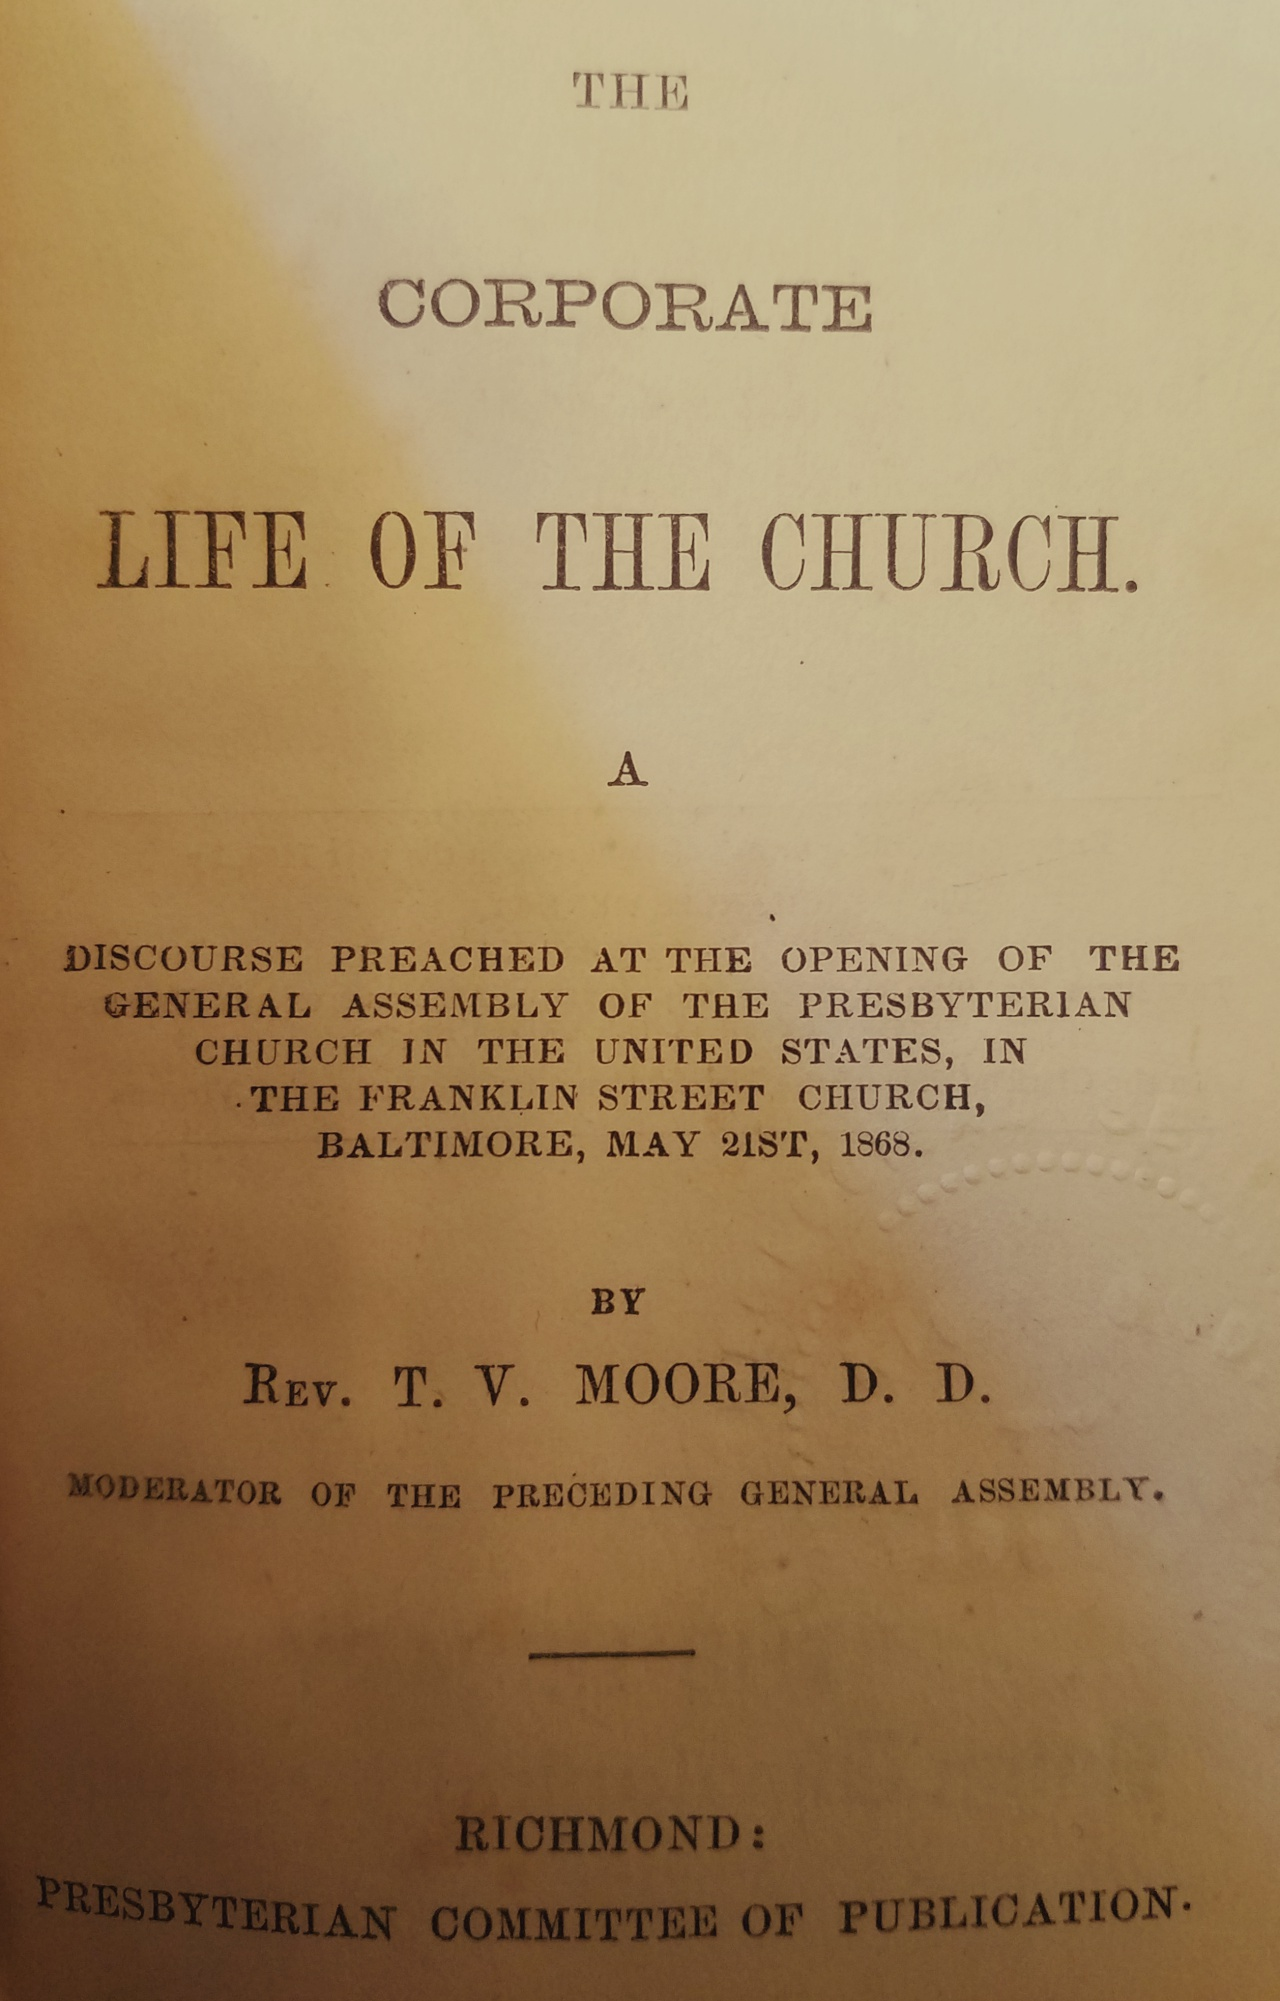 Moore, Thomas Verner, The Corporate Life of the Church Title Page.jpg